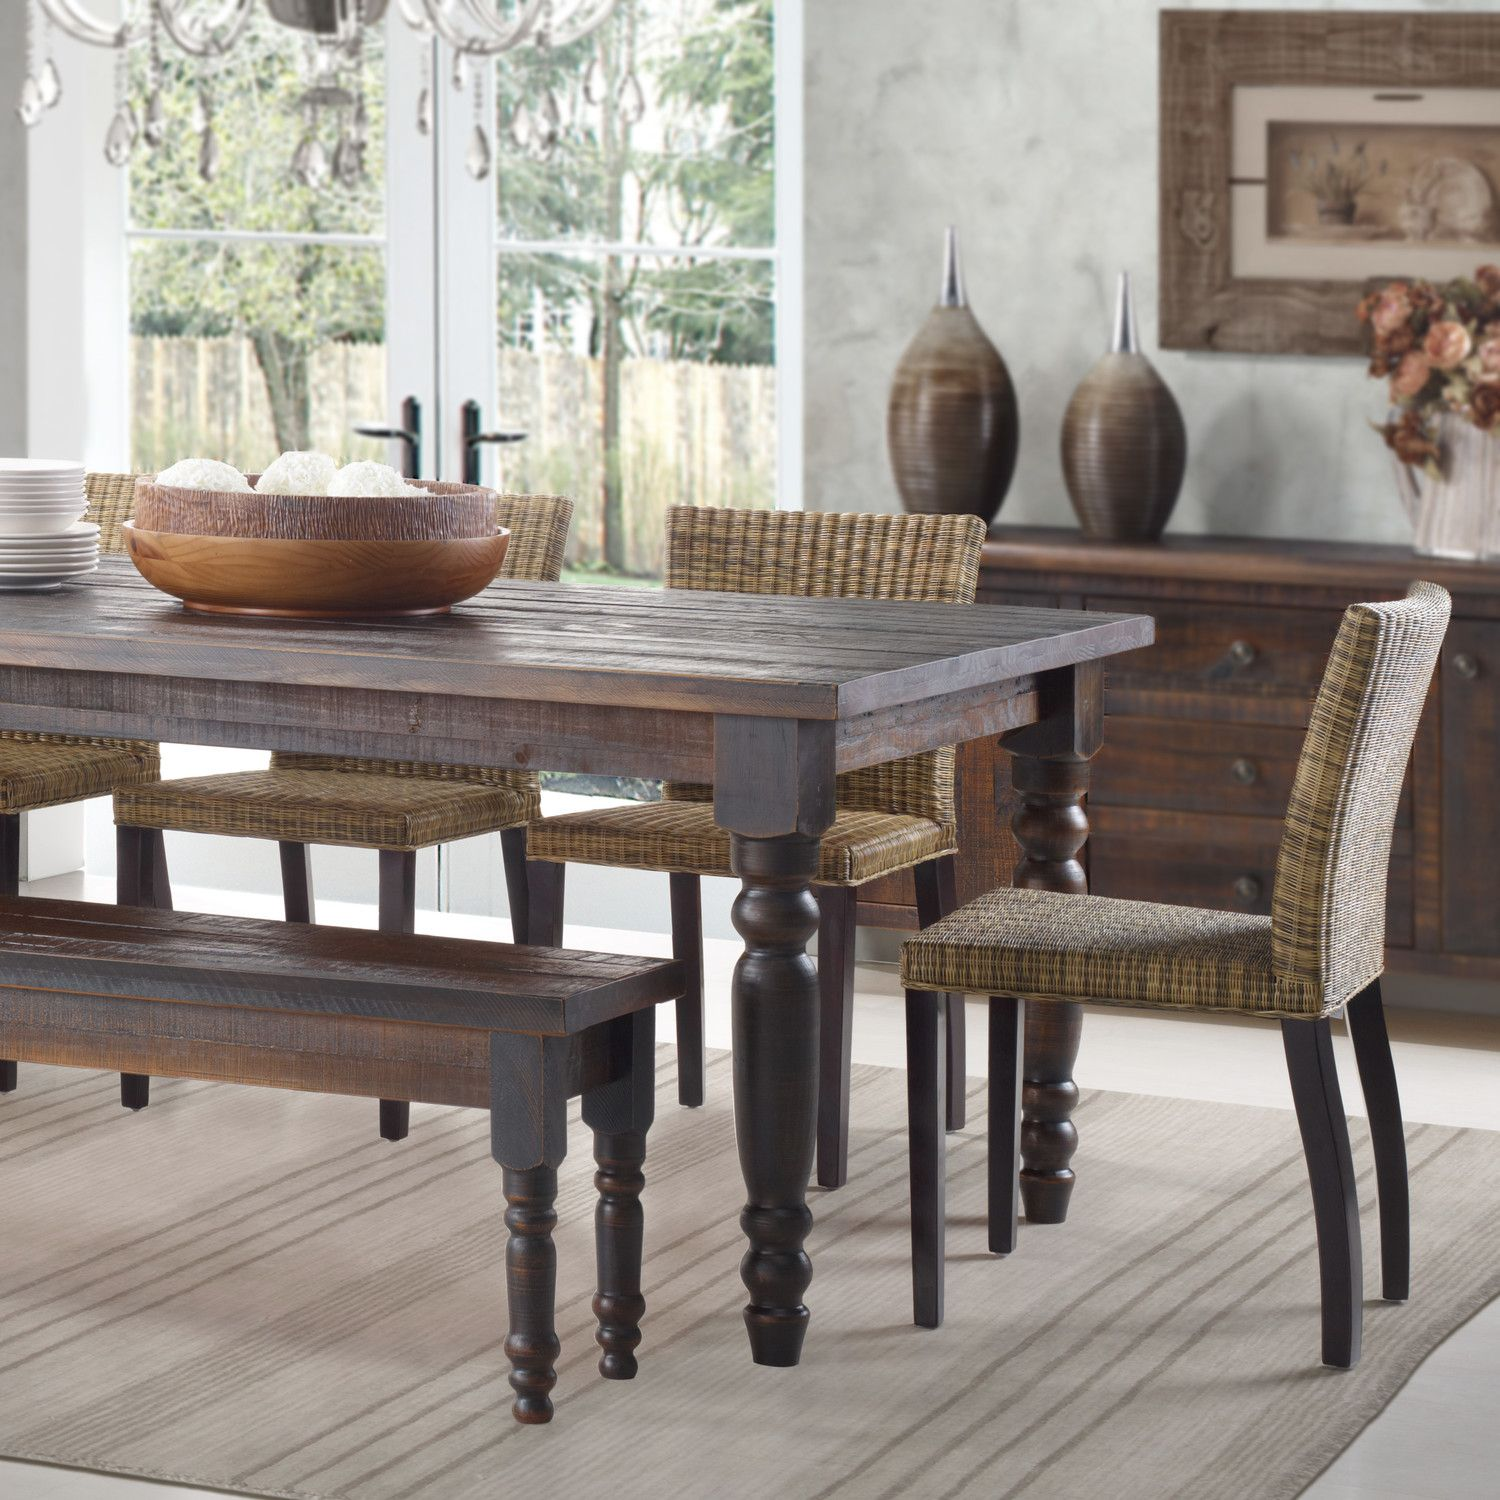 Valerie Dining Table Beach Pinterest Wood Furniture Woods And - Wayfair dining table with bench